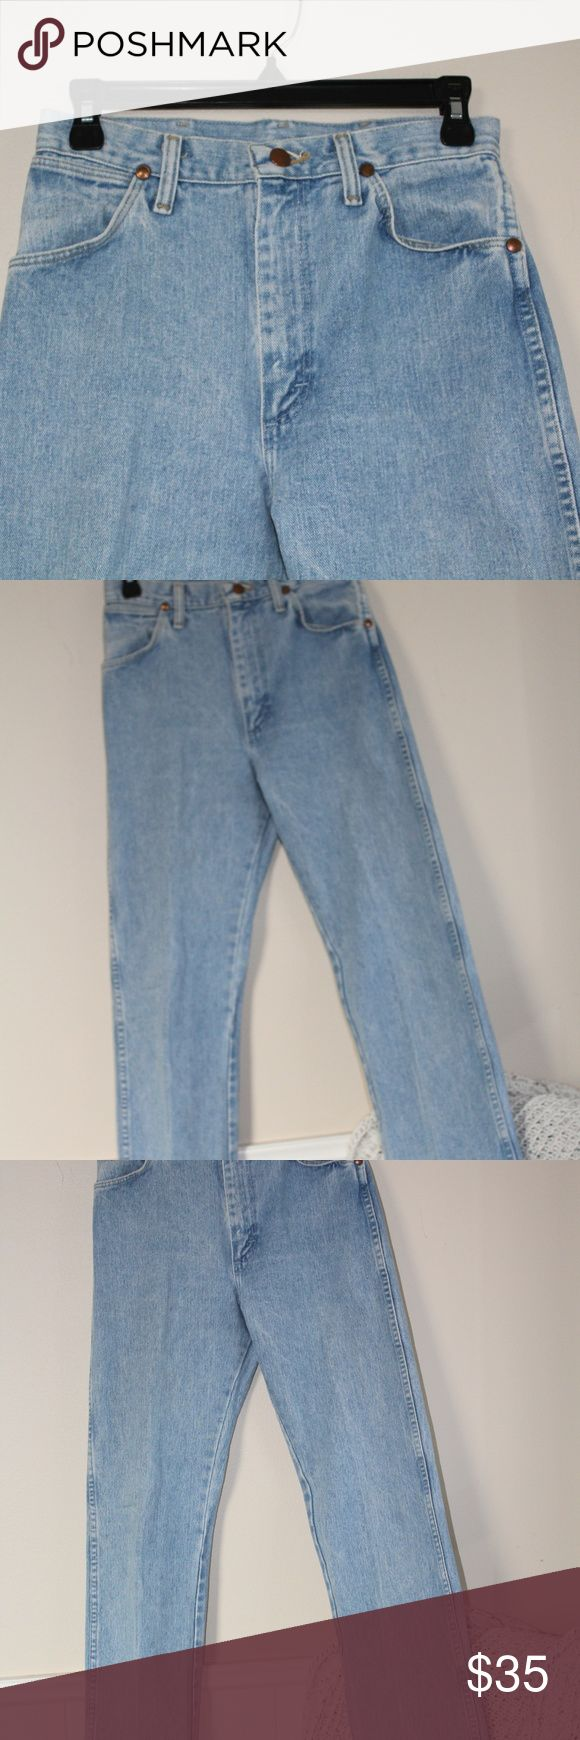 Vintage Wrangler Pants mom jeans style wranglers no pockets in back size listed 7x32   no stains or holes Wrangler Pants Straight Leg